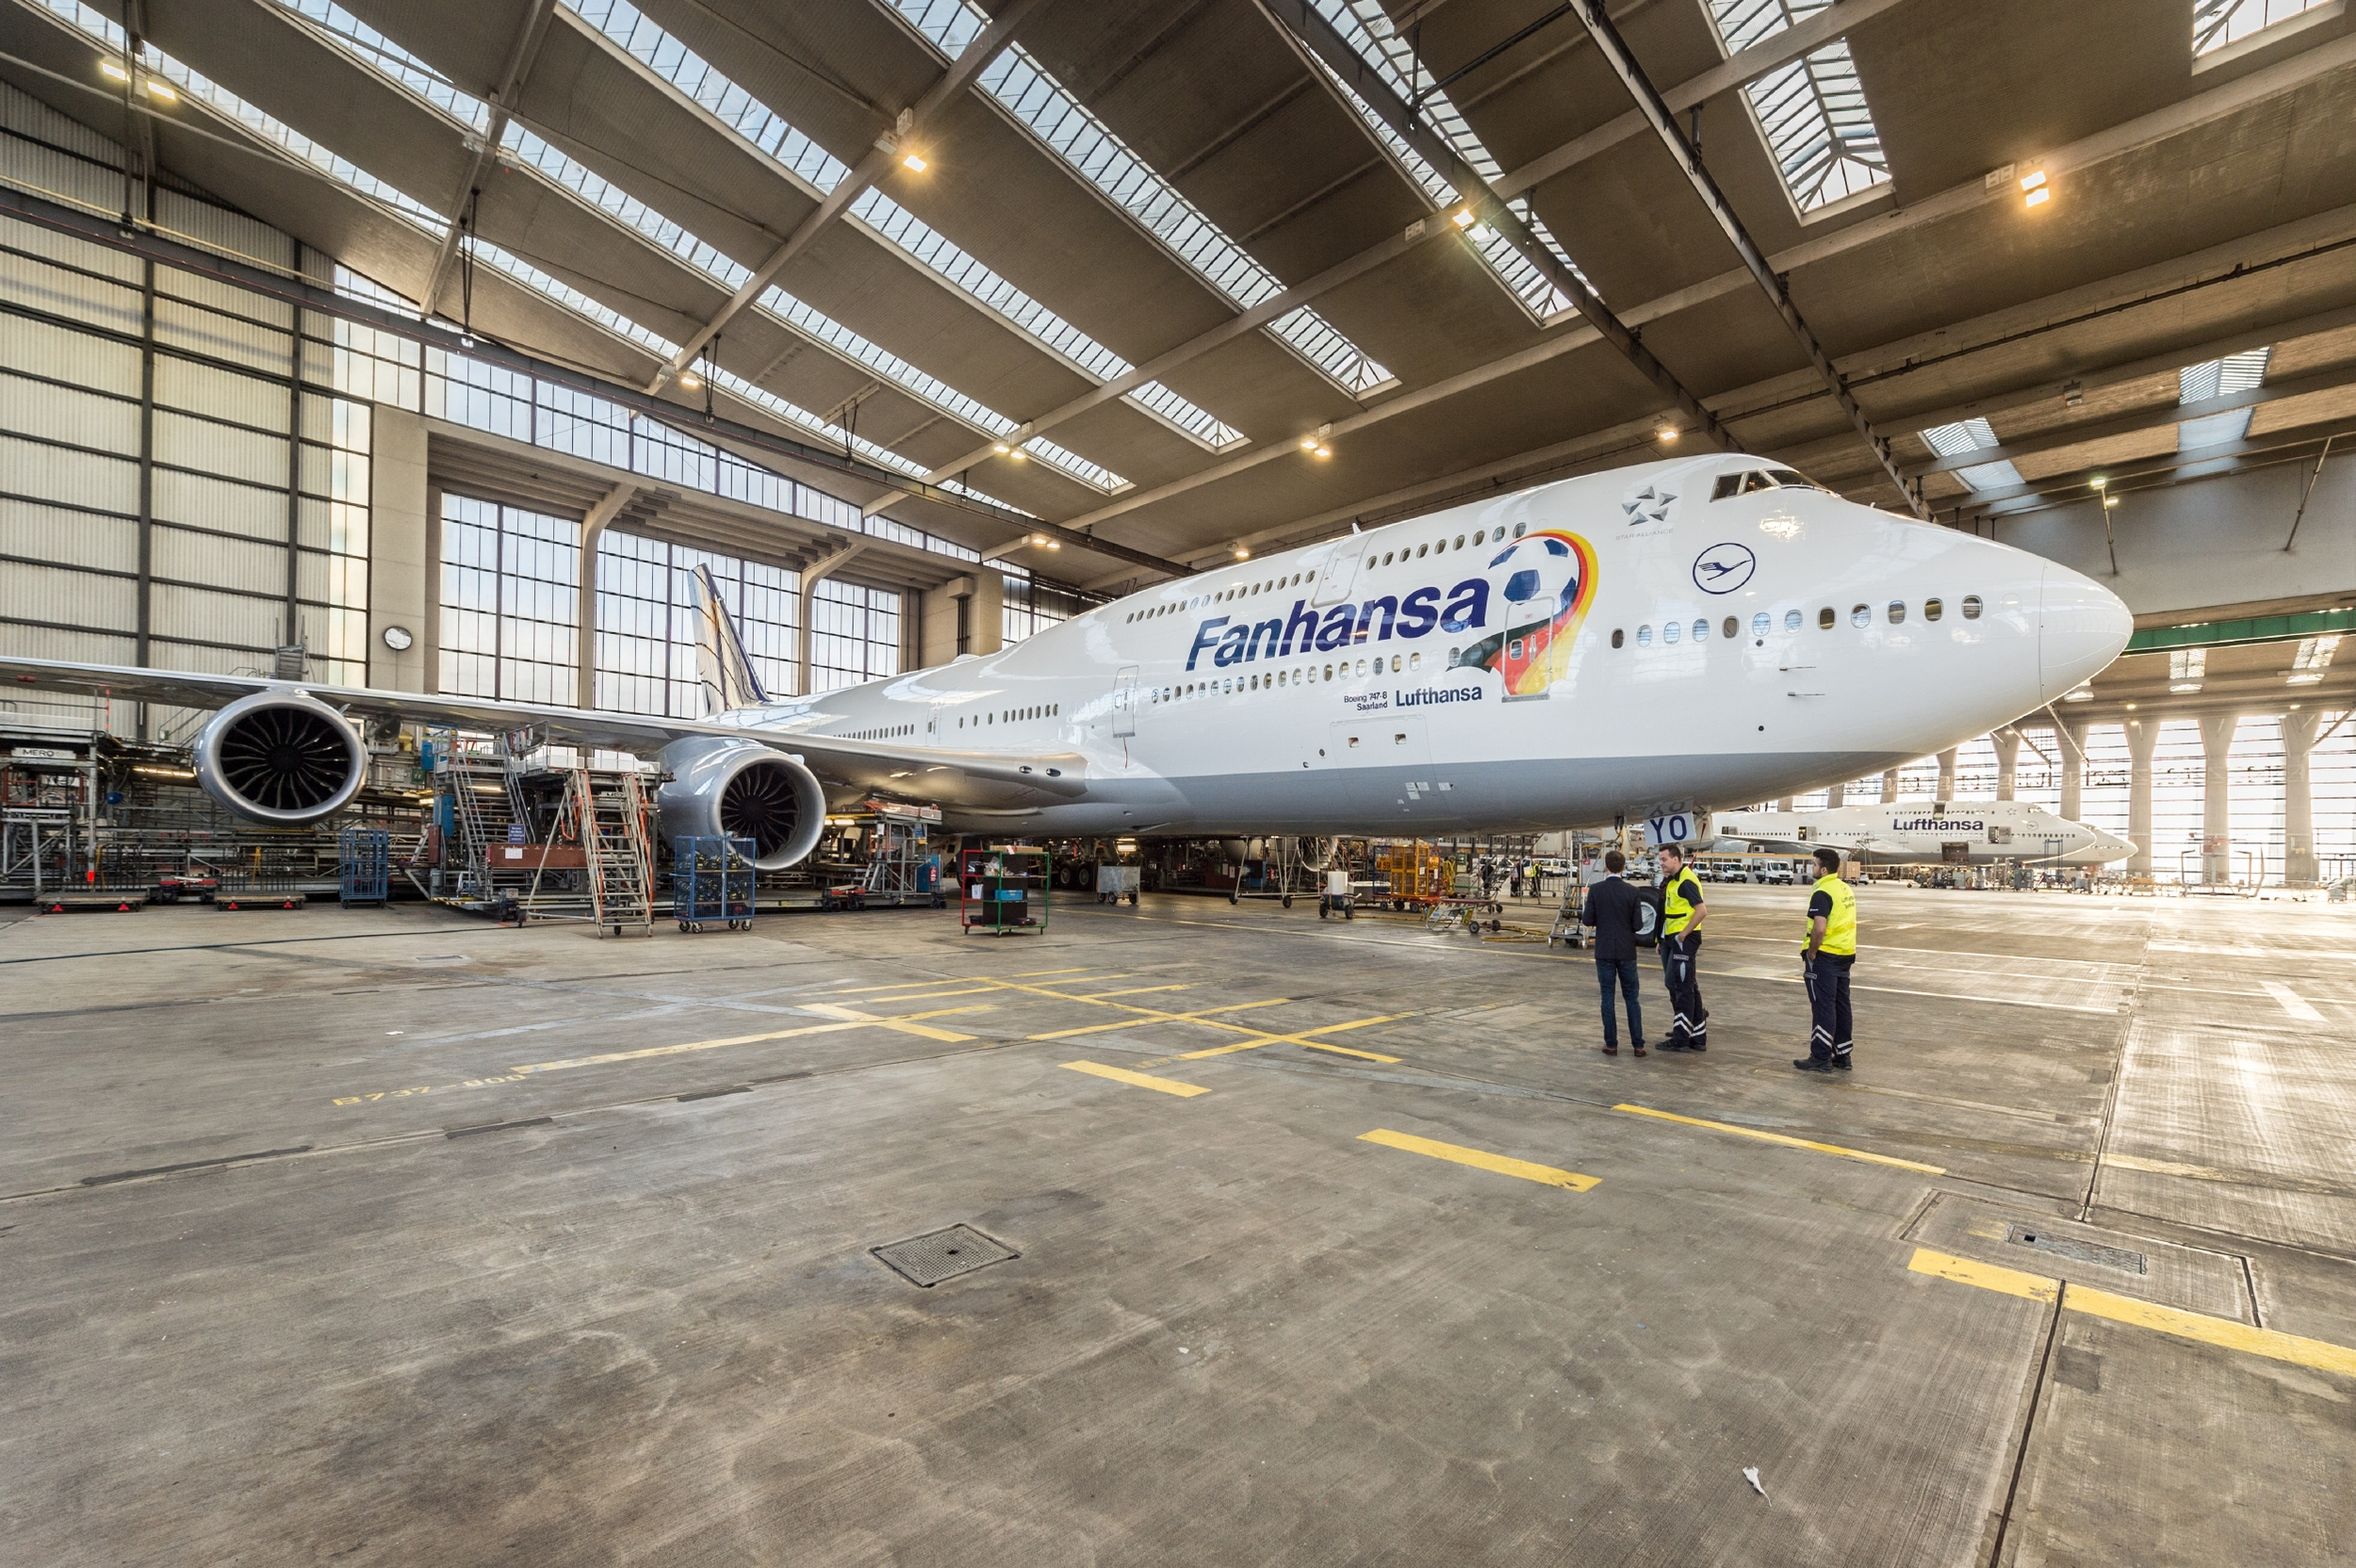 """As corresponds to one of the World's football powerhouses, Lufthansa has painted not only one aircraft in """"Fanhansa"""" World Cup livery, but two...  Picture: Lufthansa"""